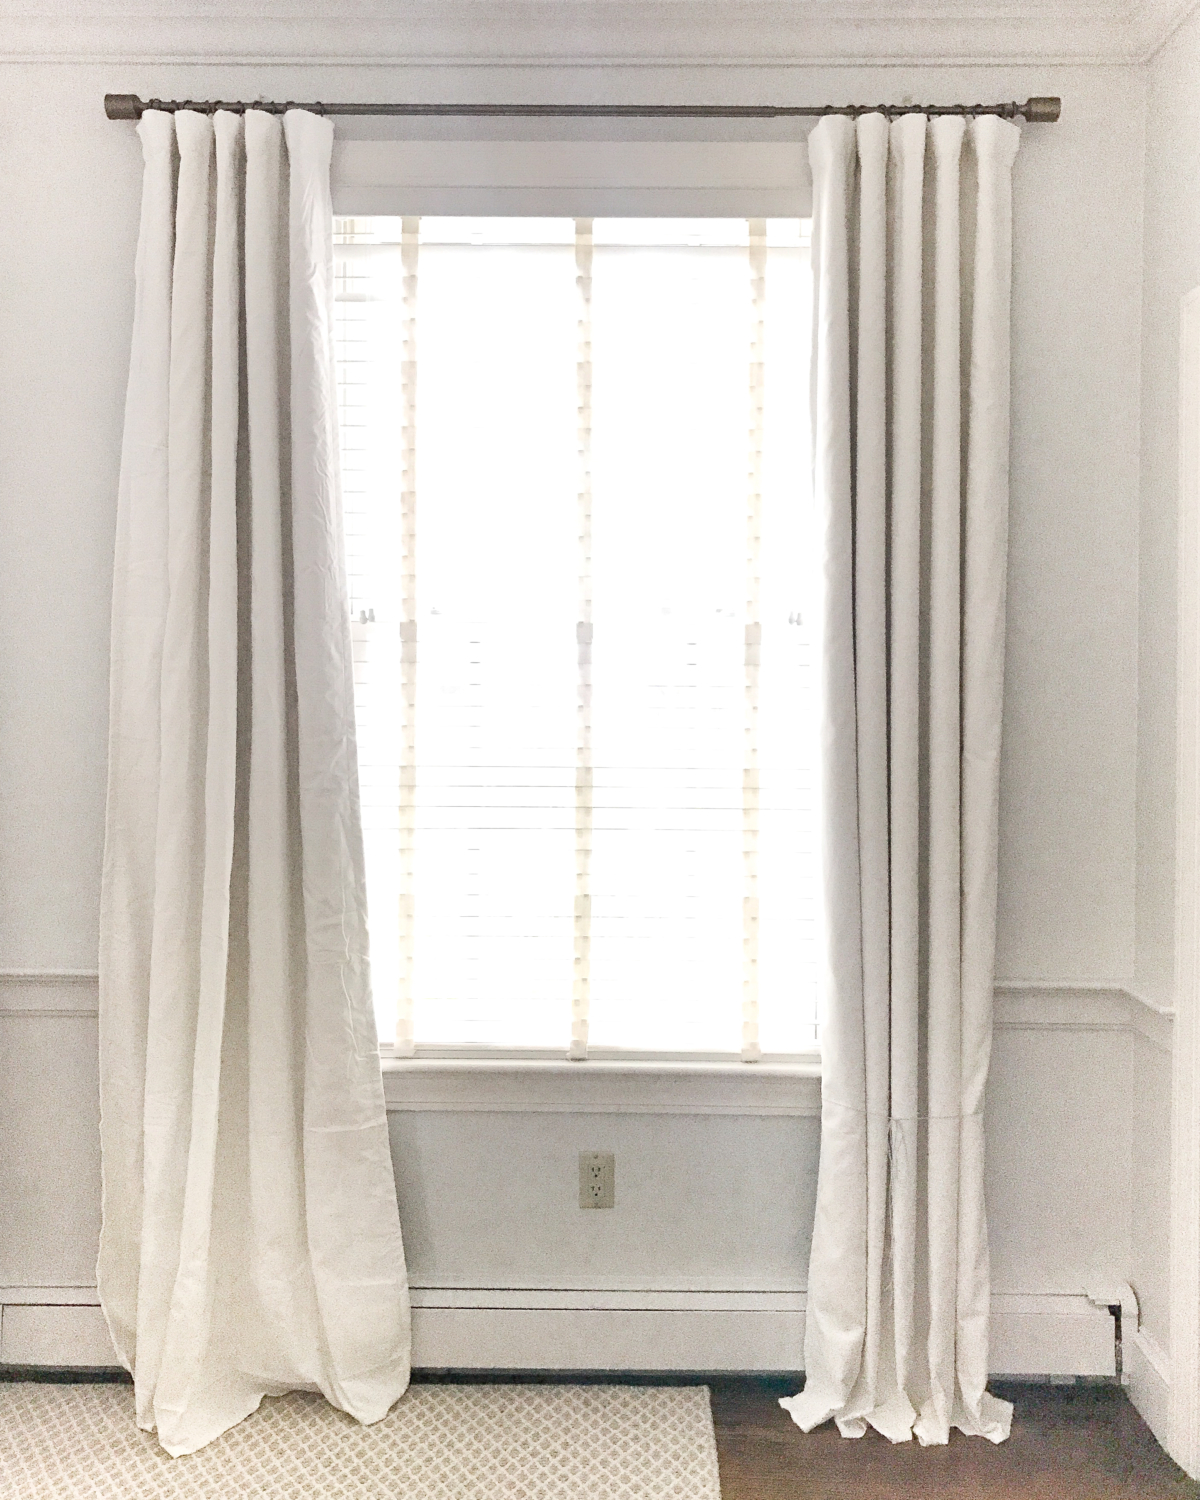 The First Important Step In How To Make Your Curtains Hang Straight Is Purchasing Quality Unlined Are Er Than Lined Ones But They